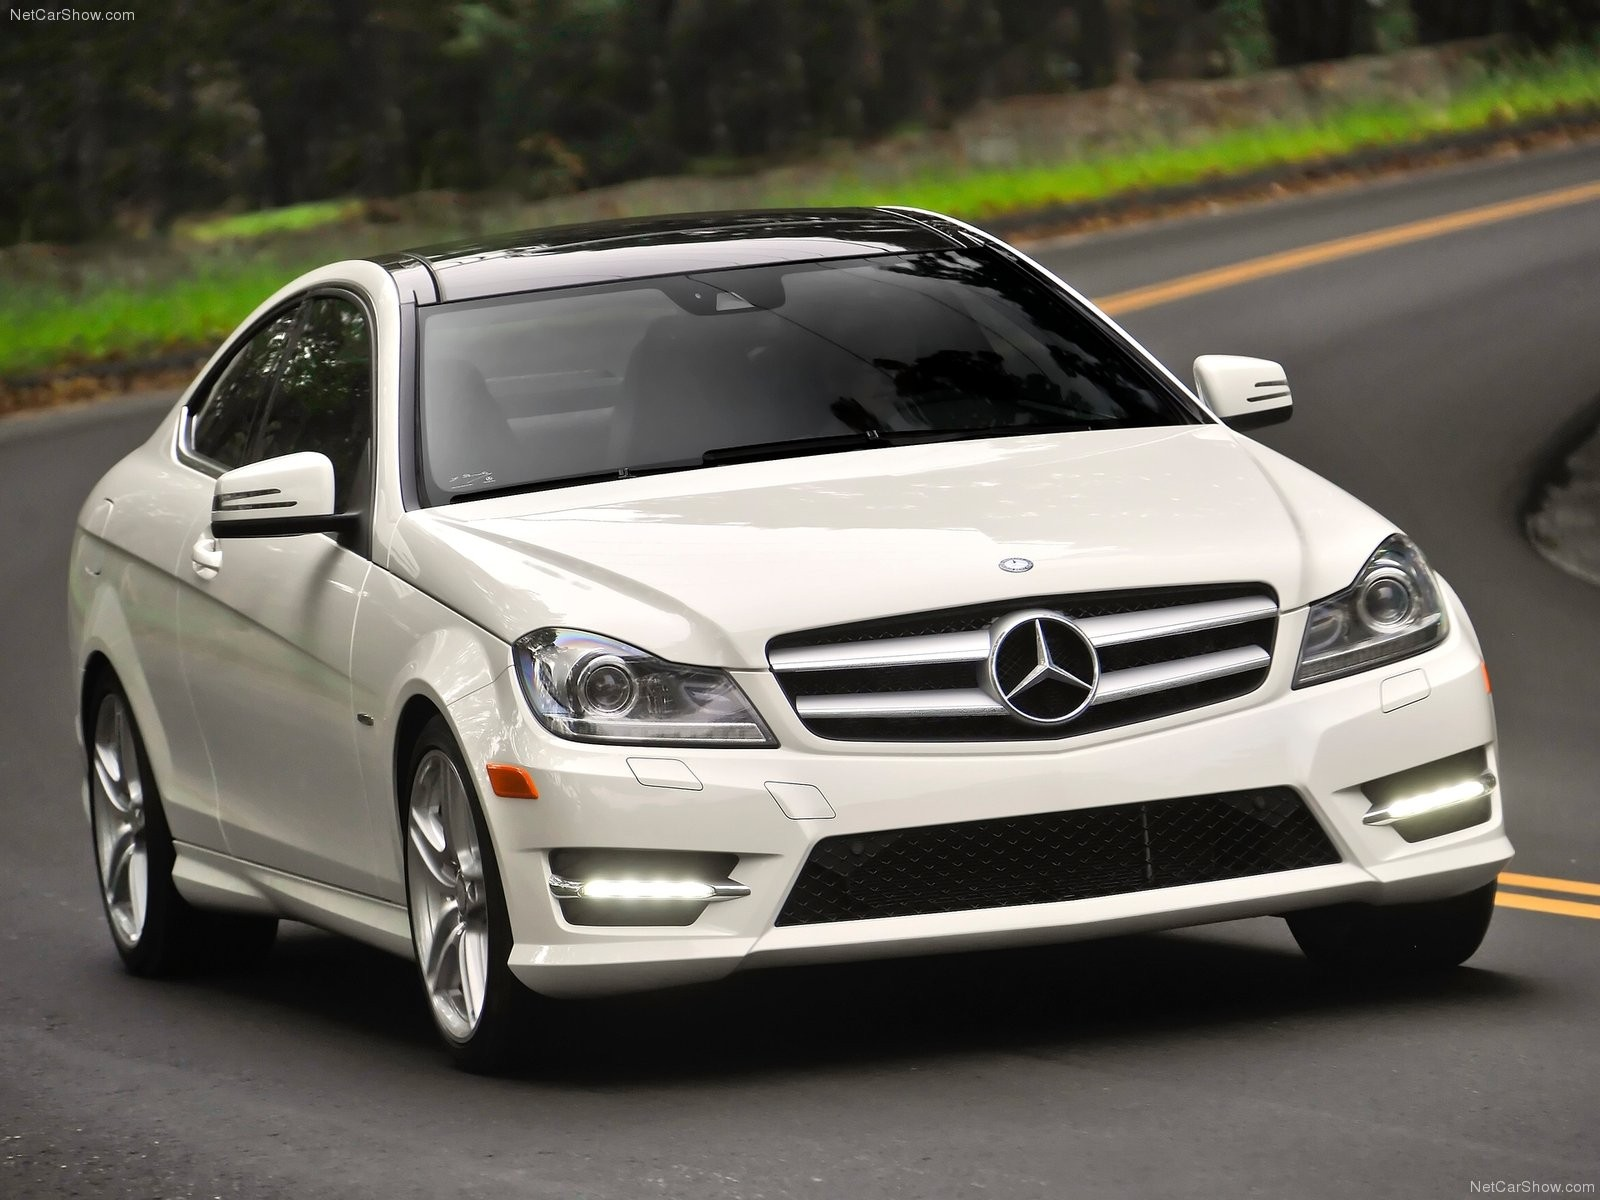 Mercedes benz car white wallpaper 1600x1200 17441 for Mercedes benz cars images